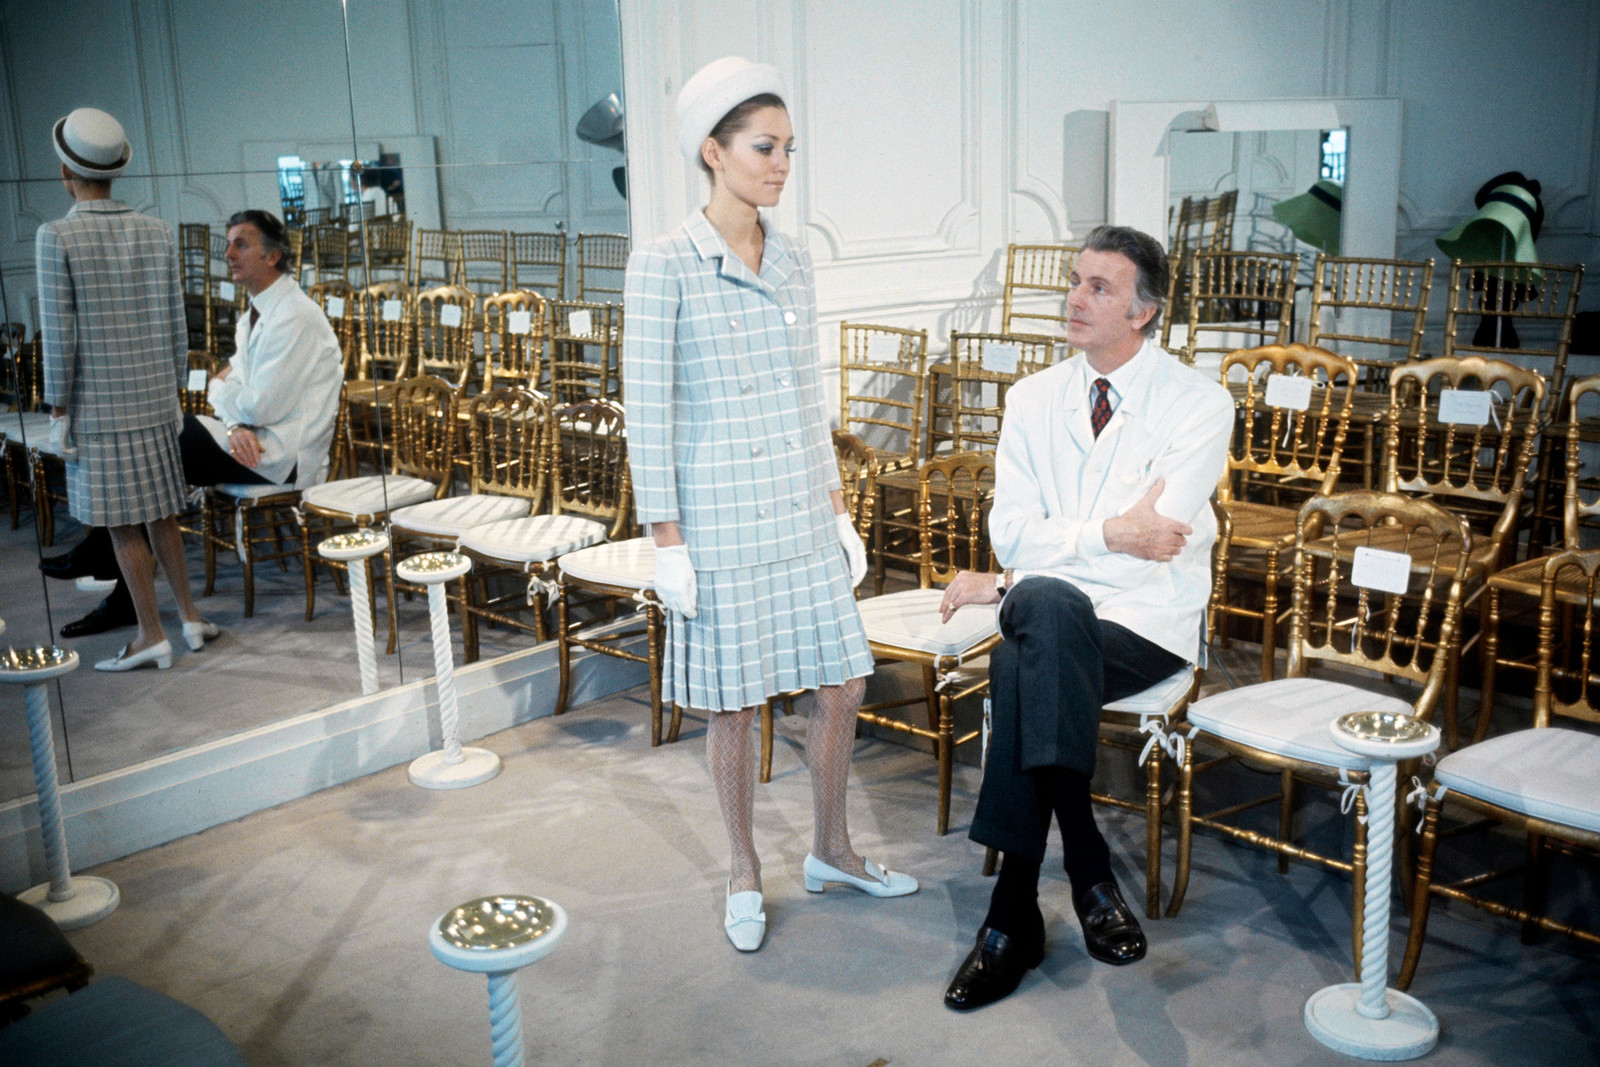 Givenchy Hubert de house design moments legacy inspiration audrey hepburn jackie kennedy bettina graziani pioneer tribute 2018 march 10 death